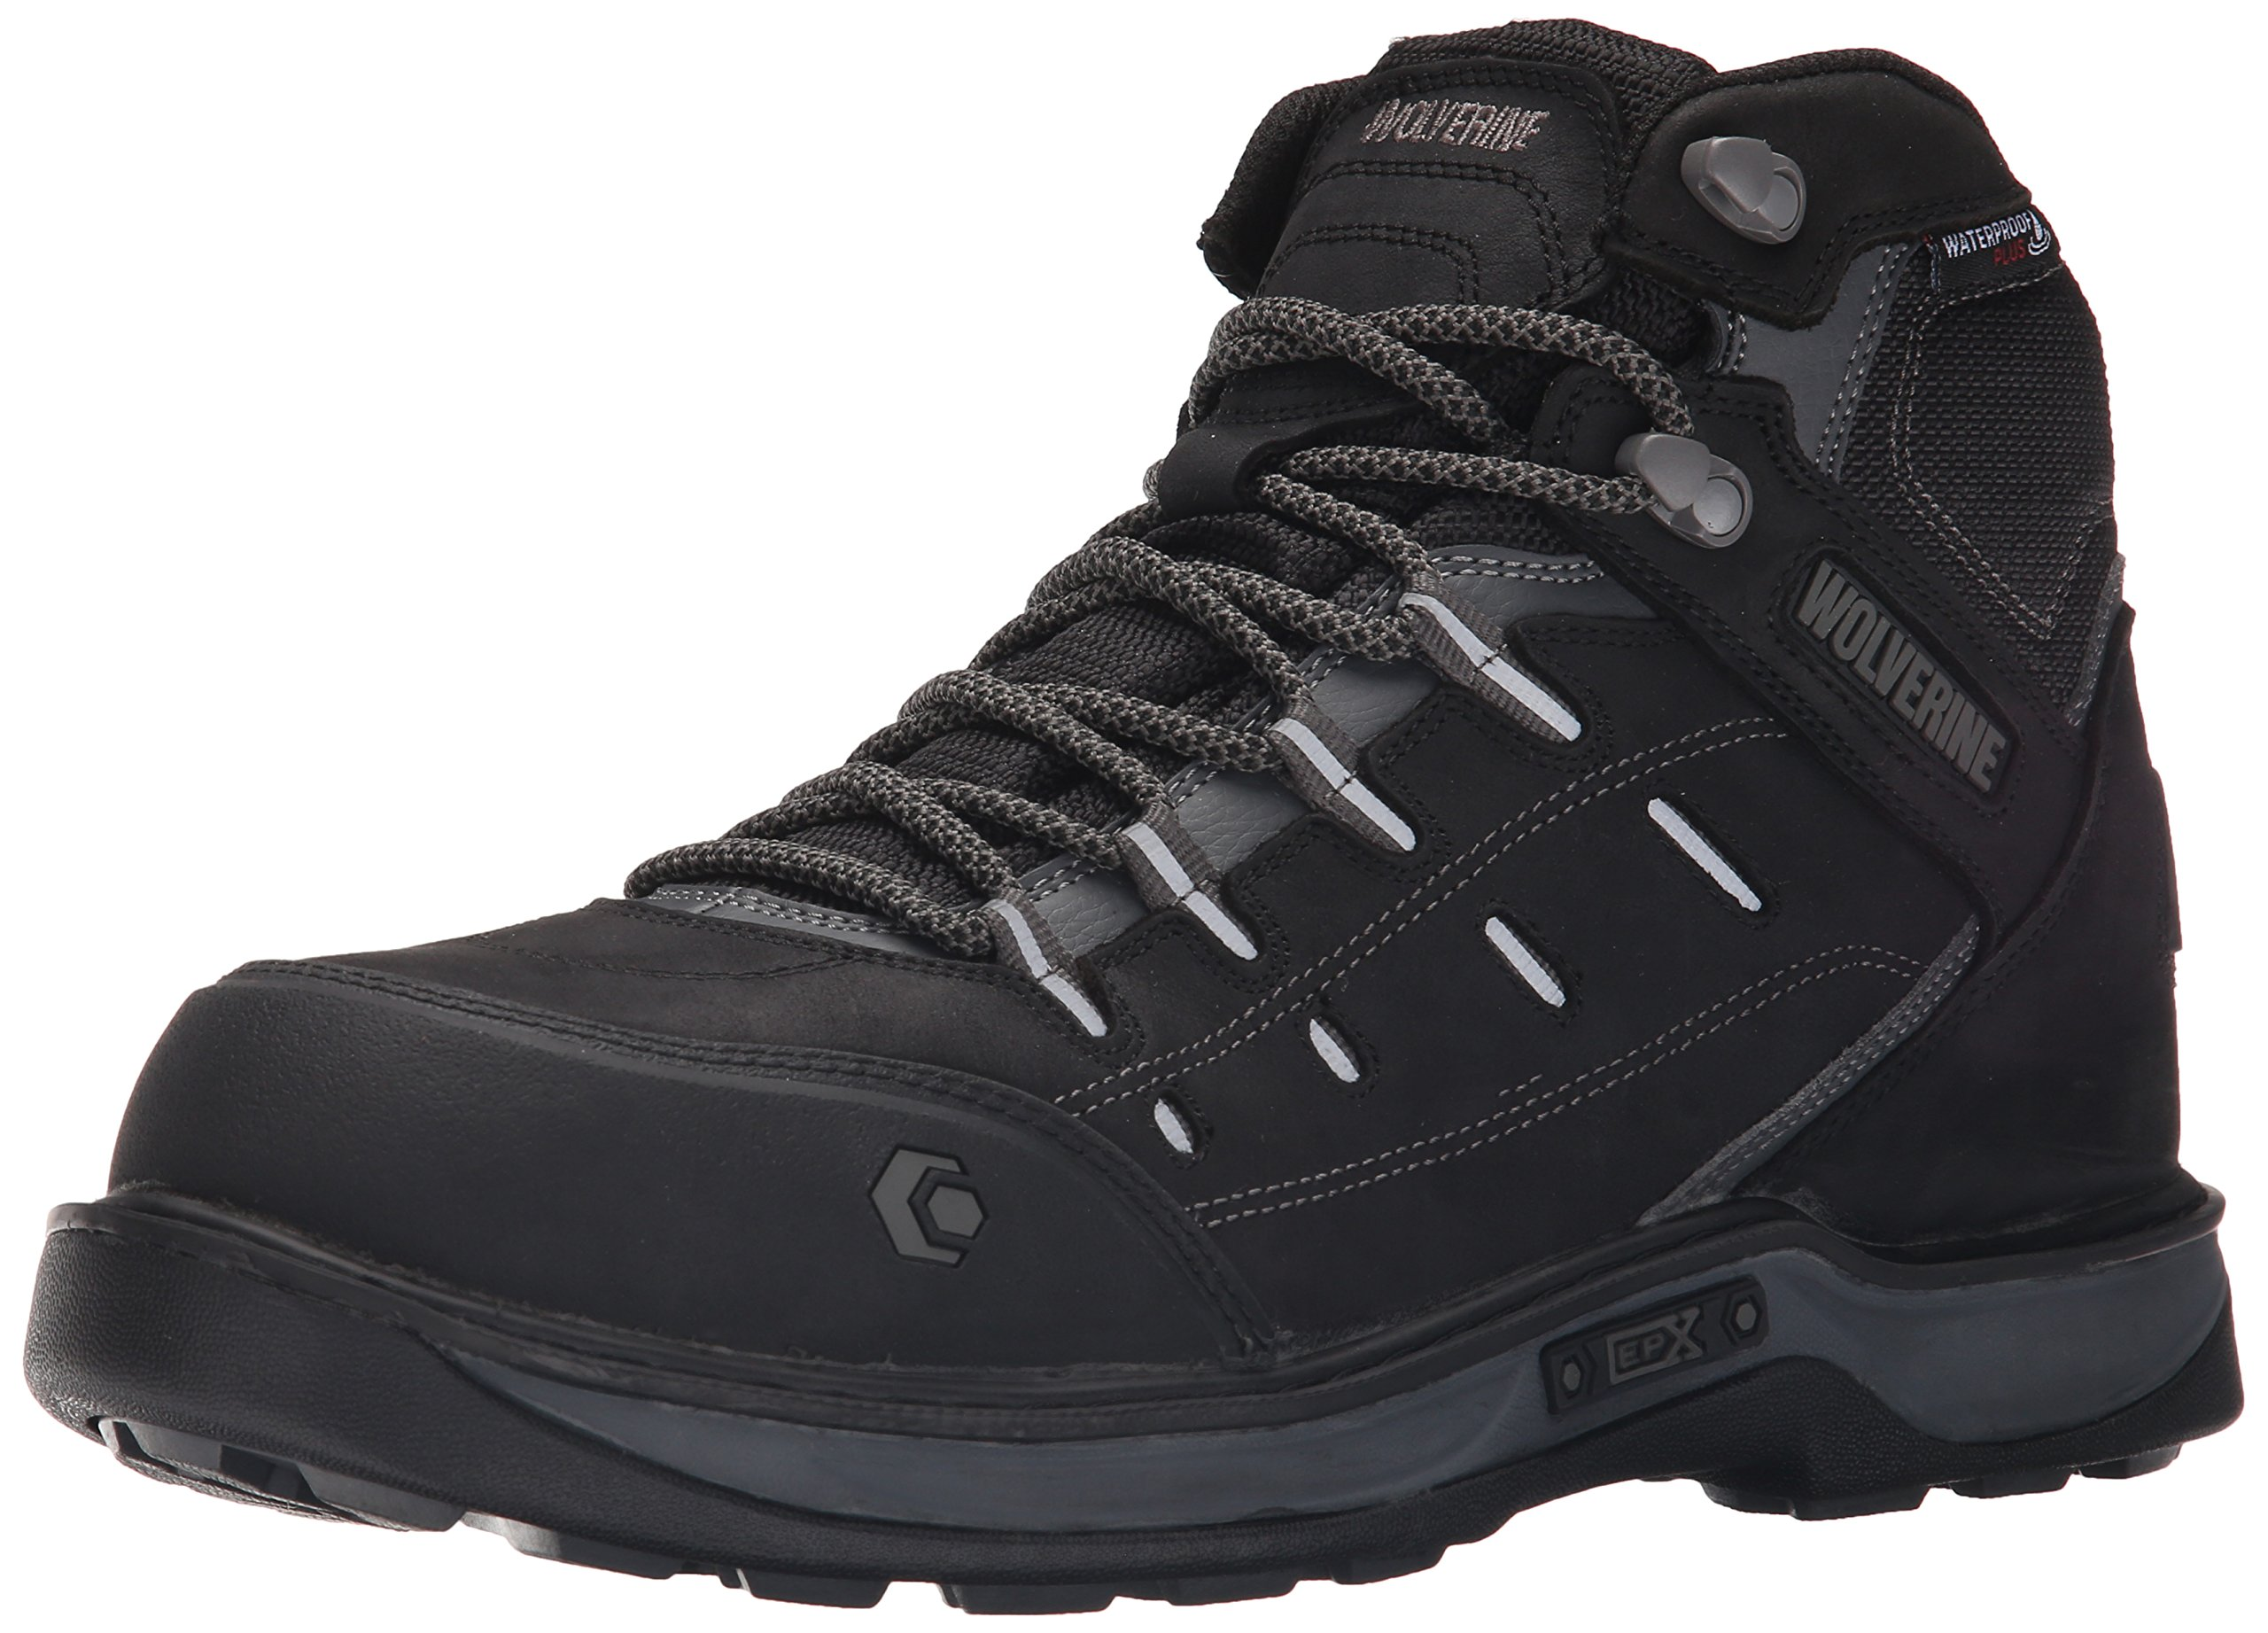 Wolverine Men's Edge LX Nano Toe Work Boot, Black/Grey, 11.5 M US by Wolverine (Image #1)